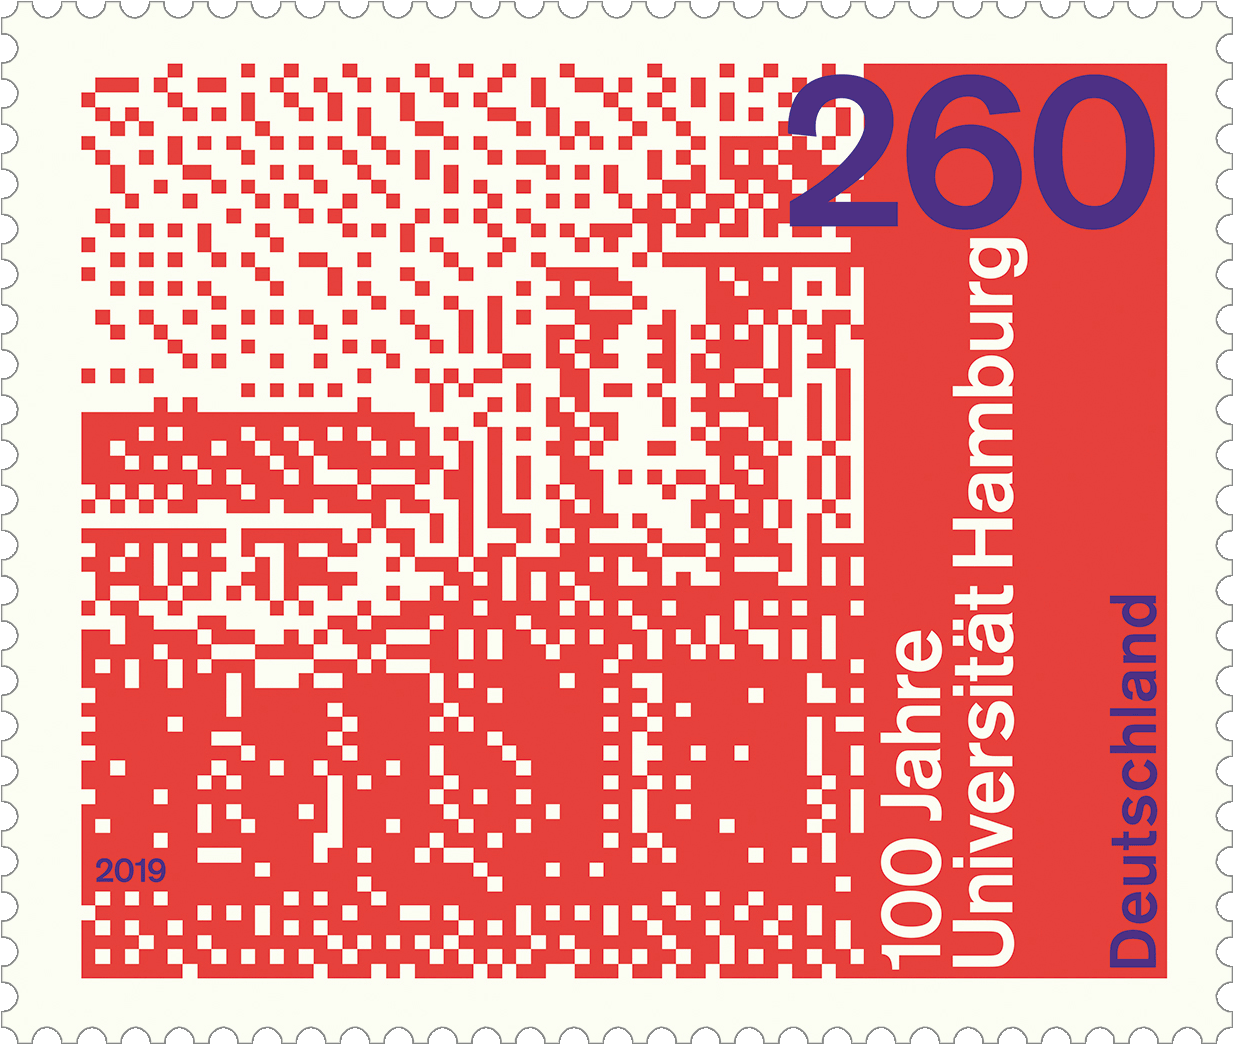 https://www.borek.de/briefmarke-100-jahre-universitaet-hamburg